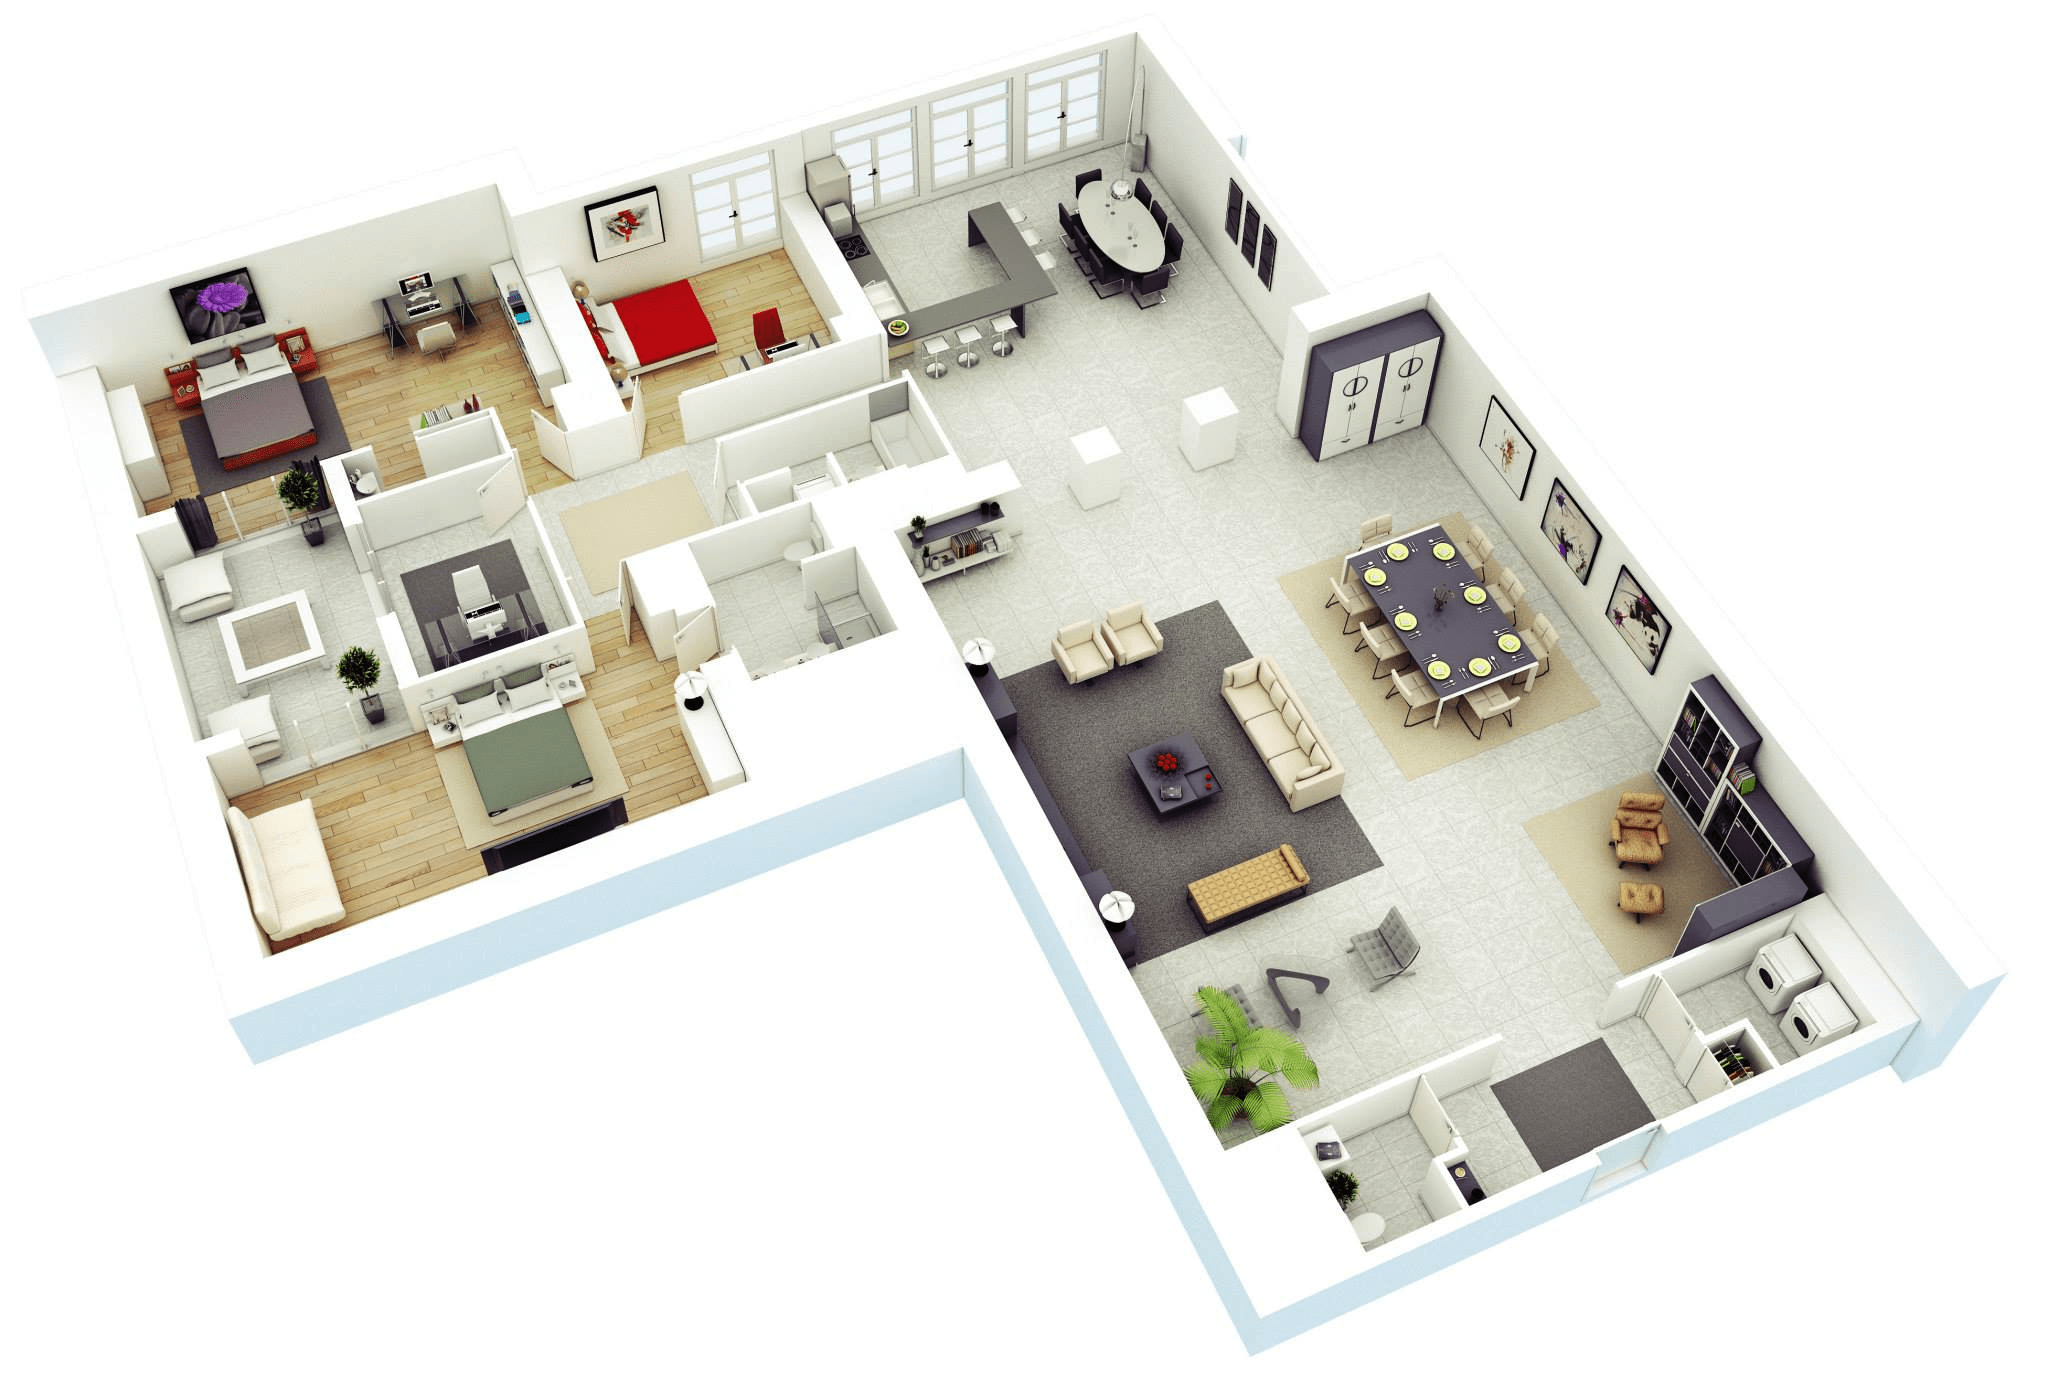 House Floor Plans With 3 Bedroom And 3 Bathroom 3d Layout (Image 8 of 11)